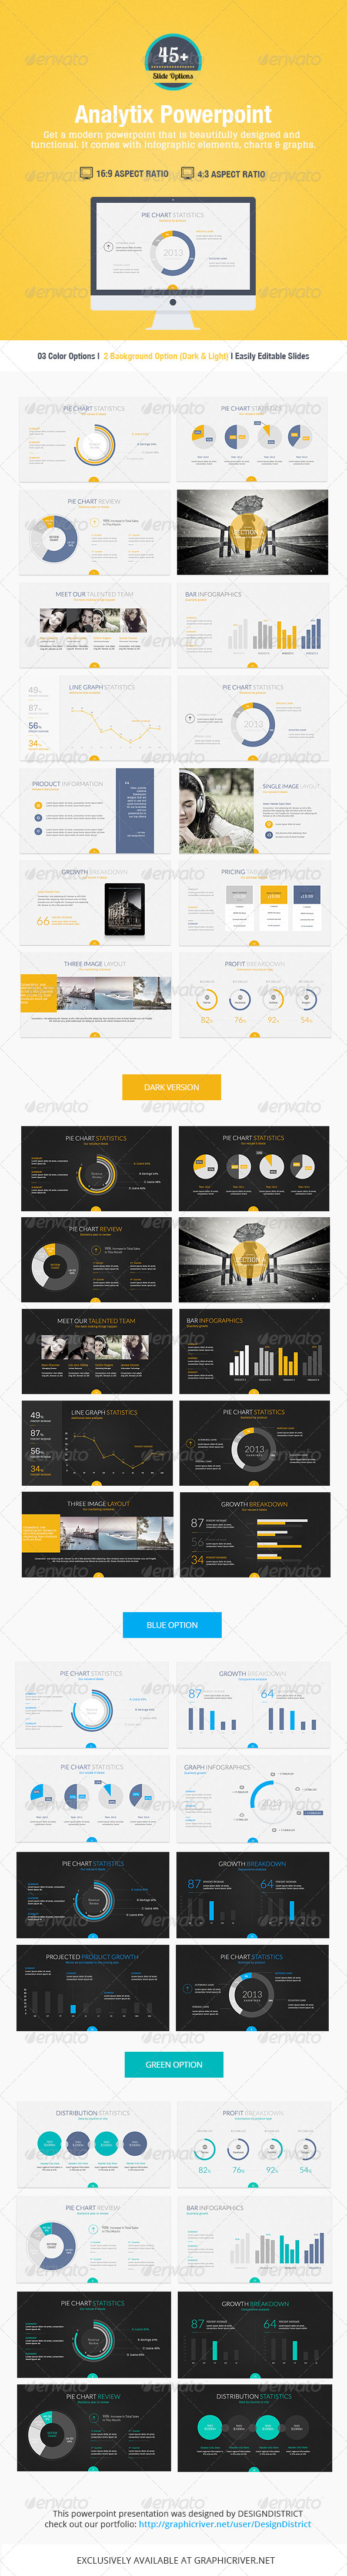 GraphicRiver Analytix Powerpoint Presentation 7301418